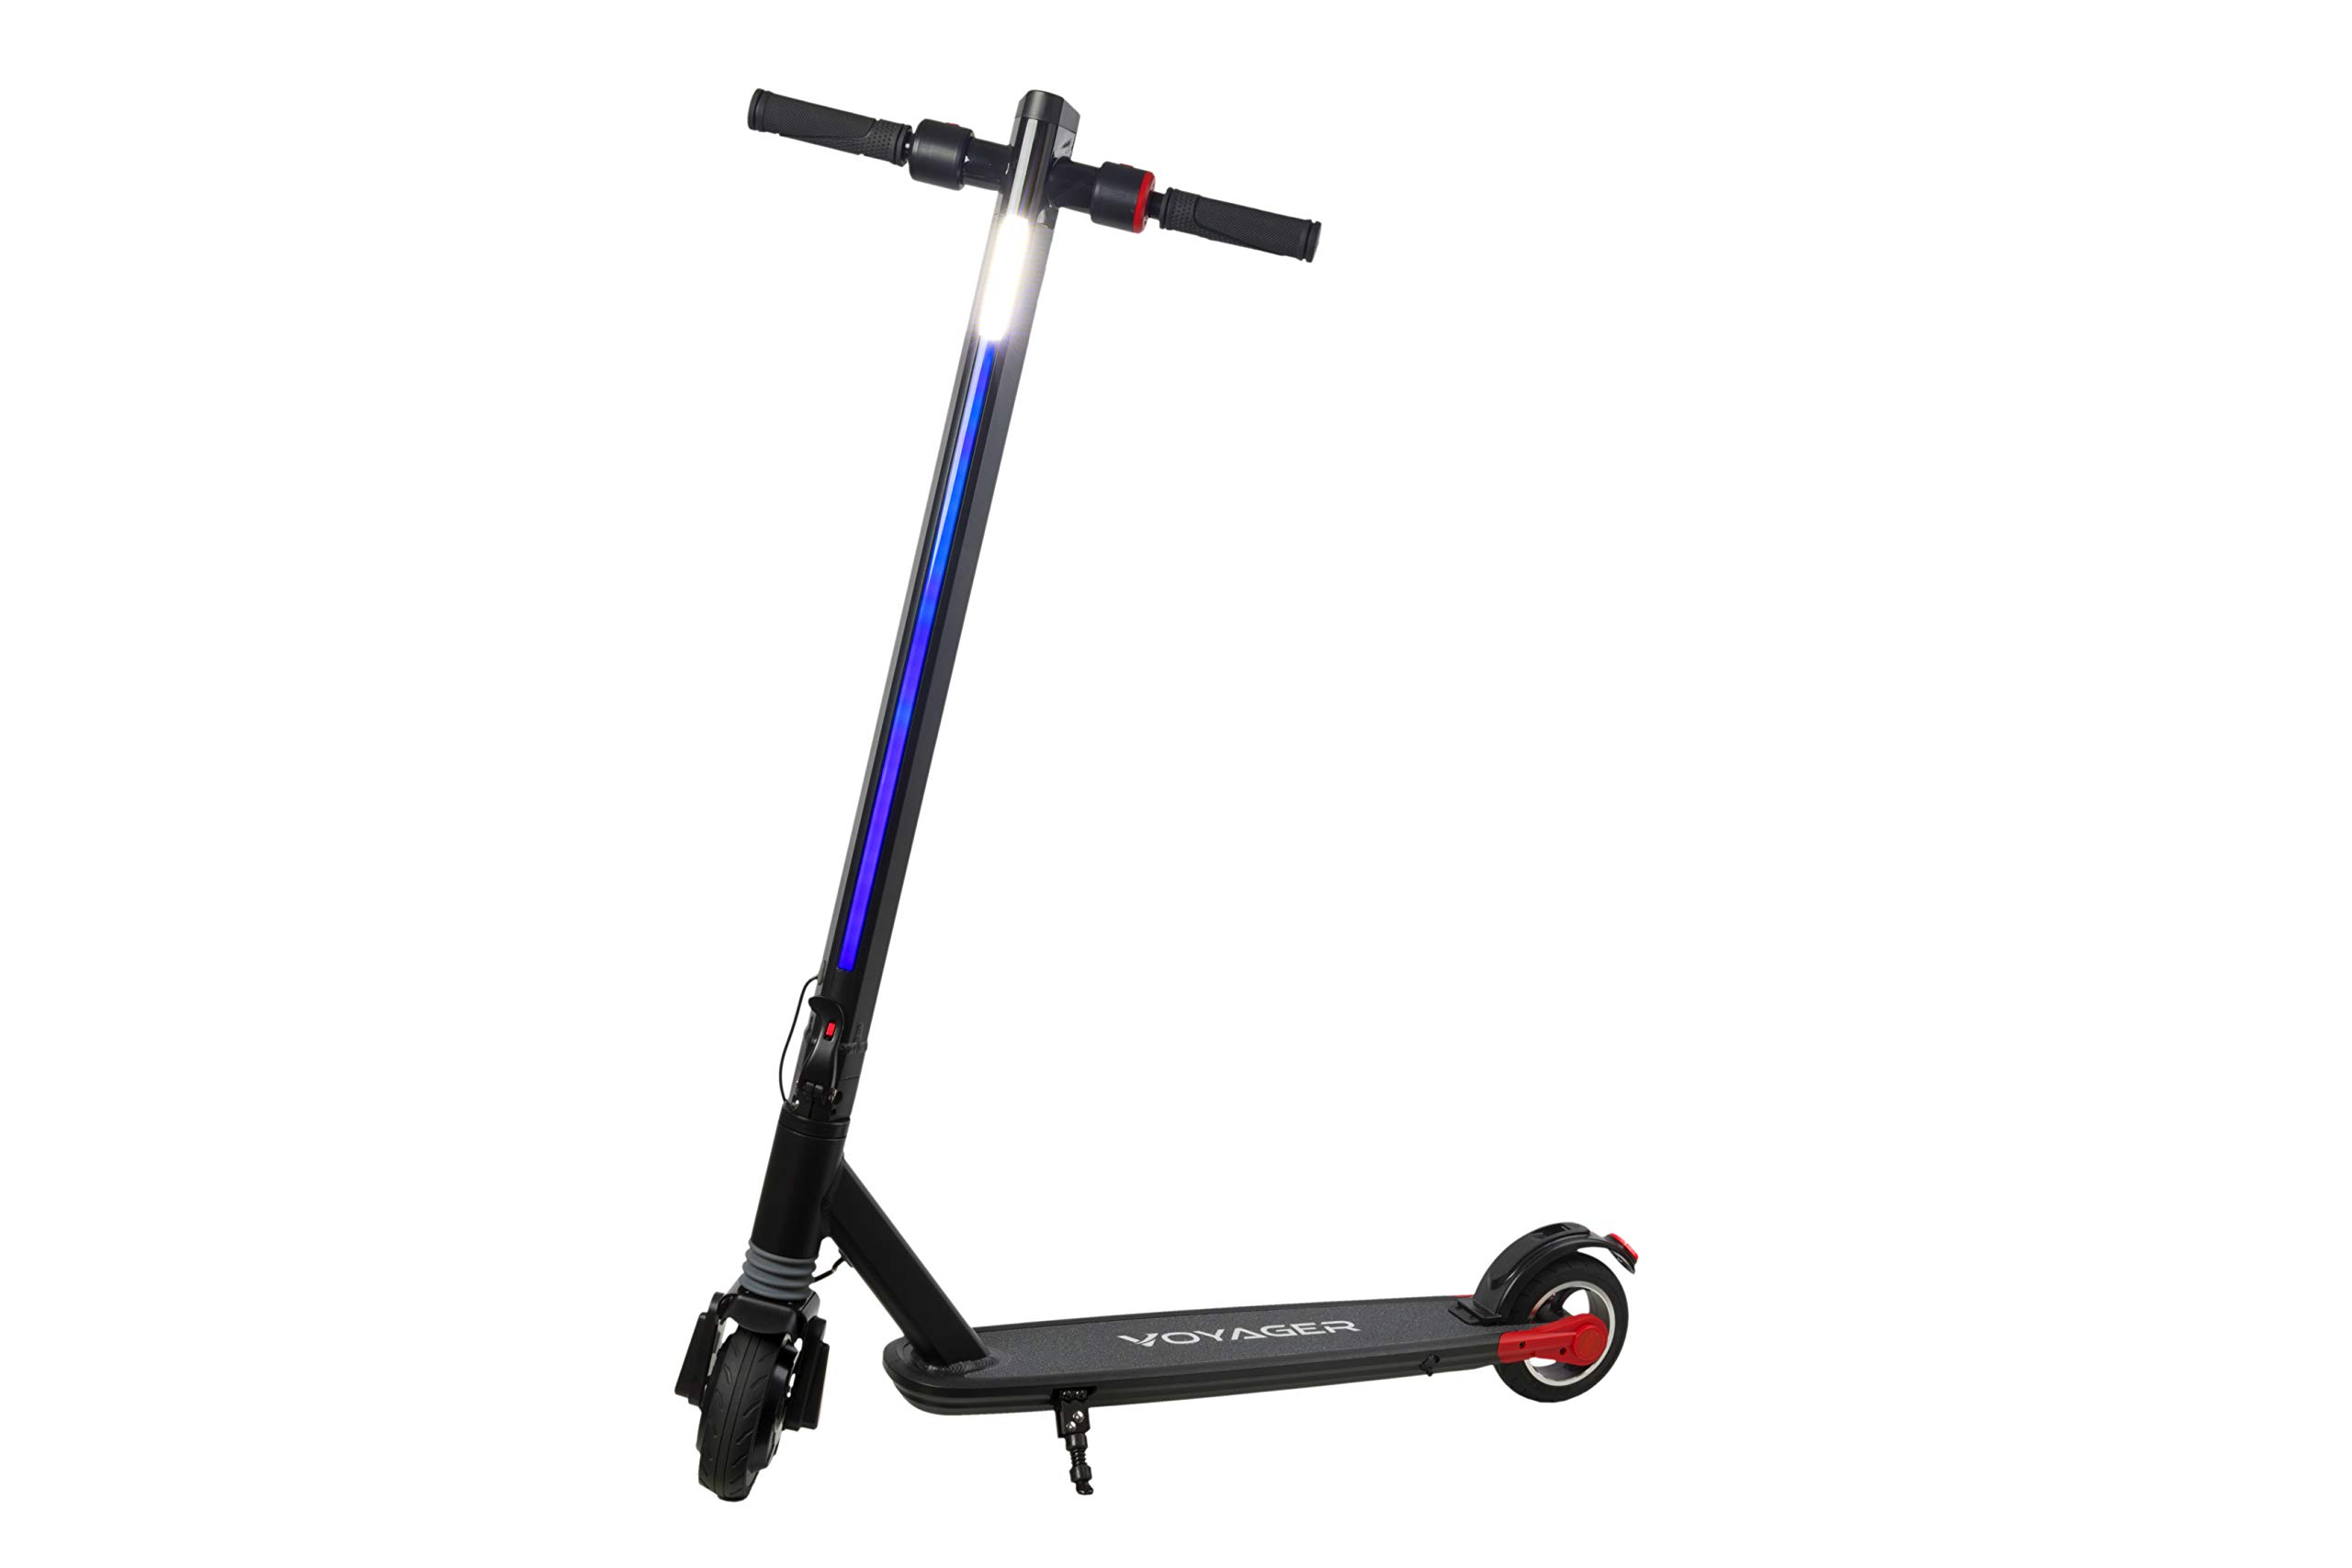 Voyager Proton Foldable Electric Scooter with LCD Display, LED Headlight and Light Strip, 15 MPH Max Speed, Long Range Battery up to 6 Miles by VOYAGER